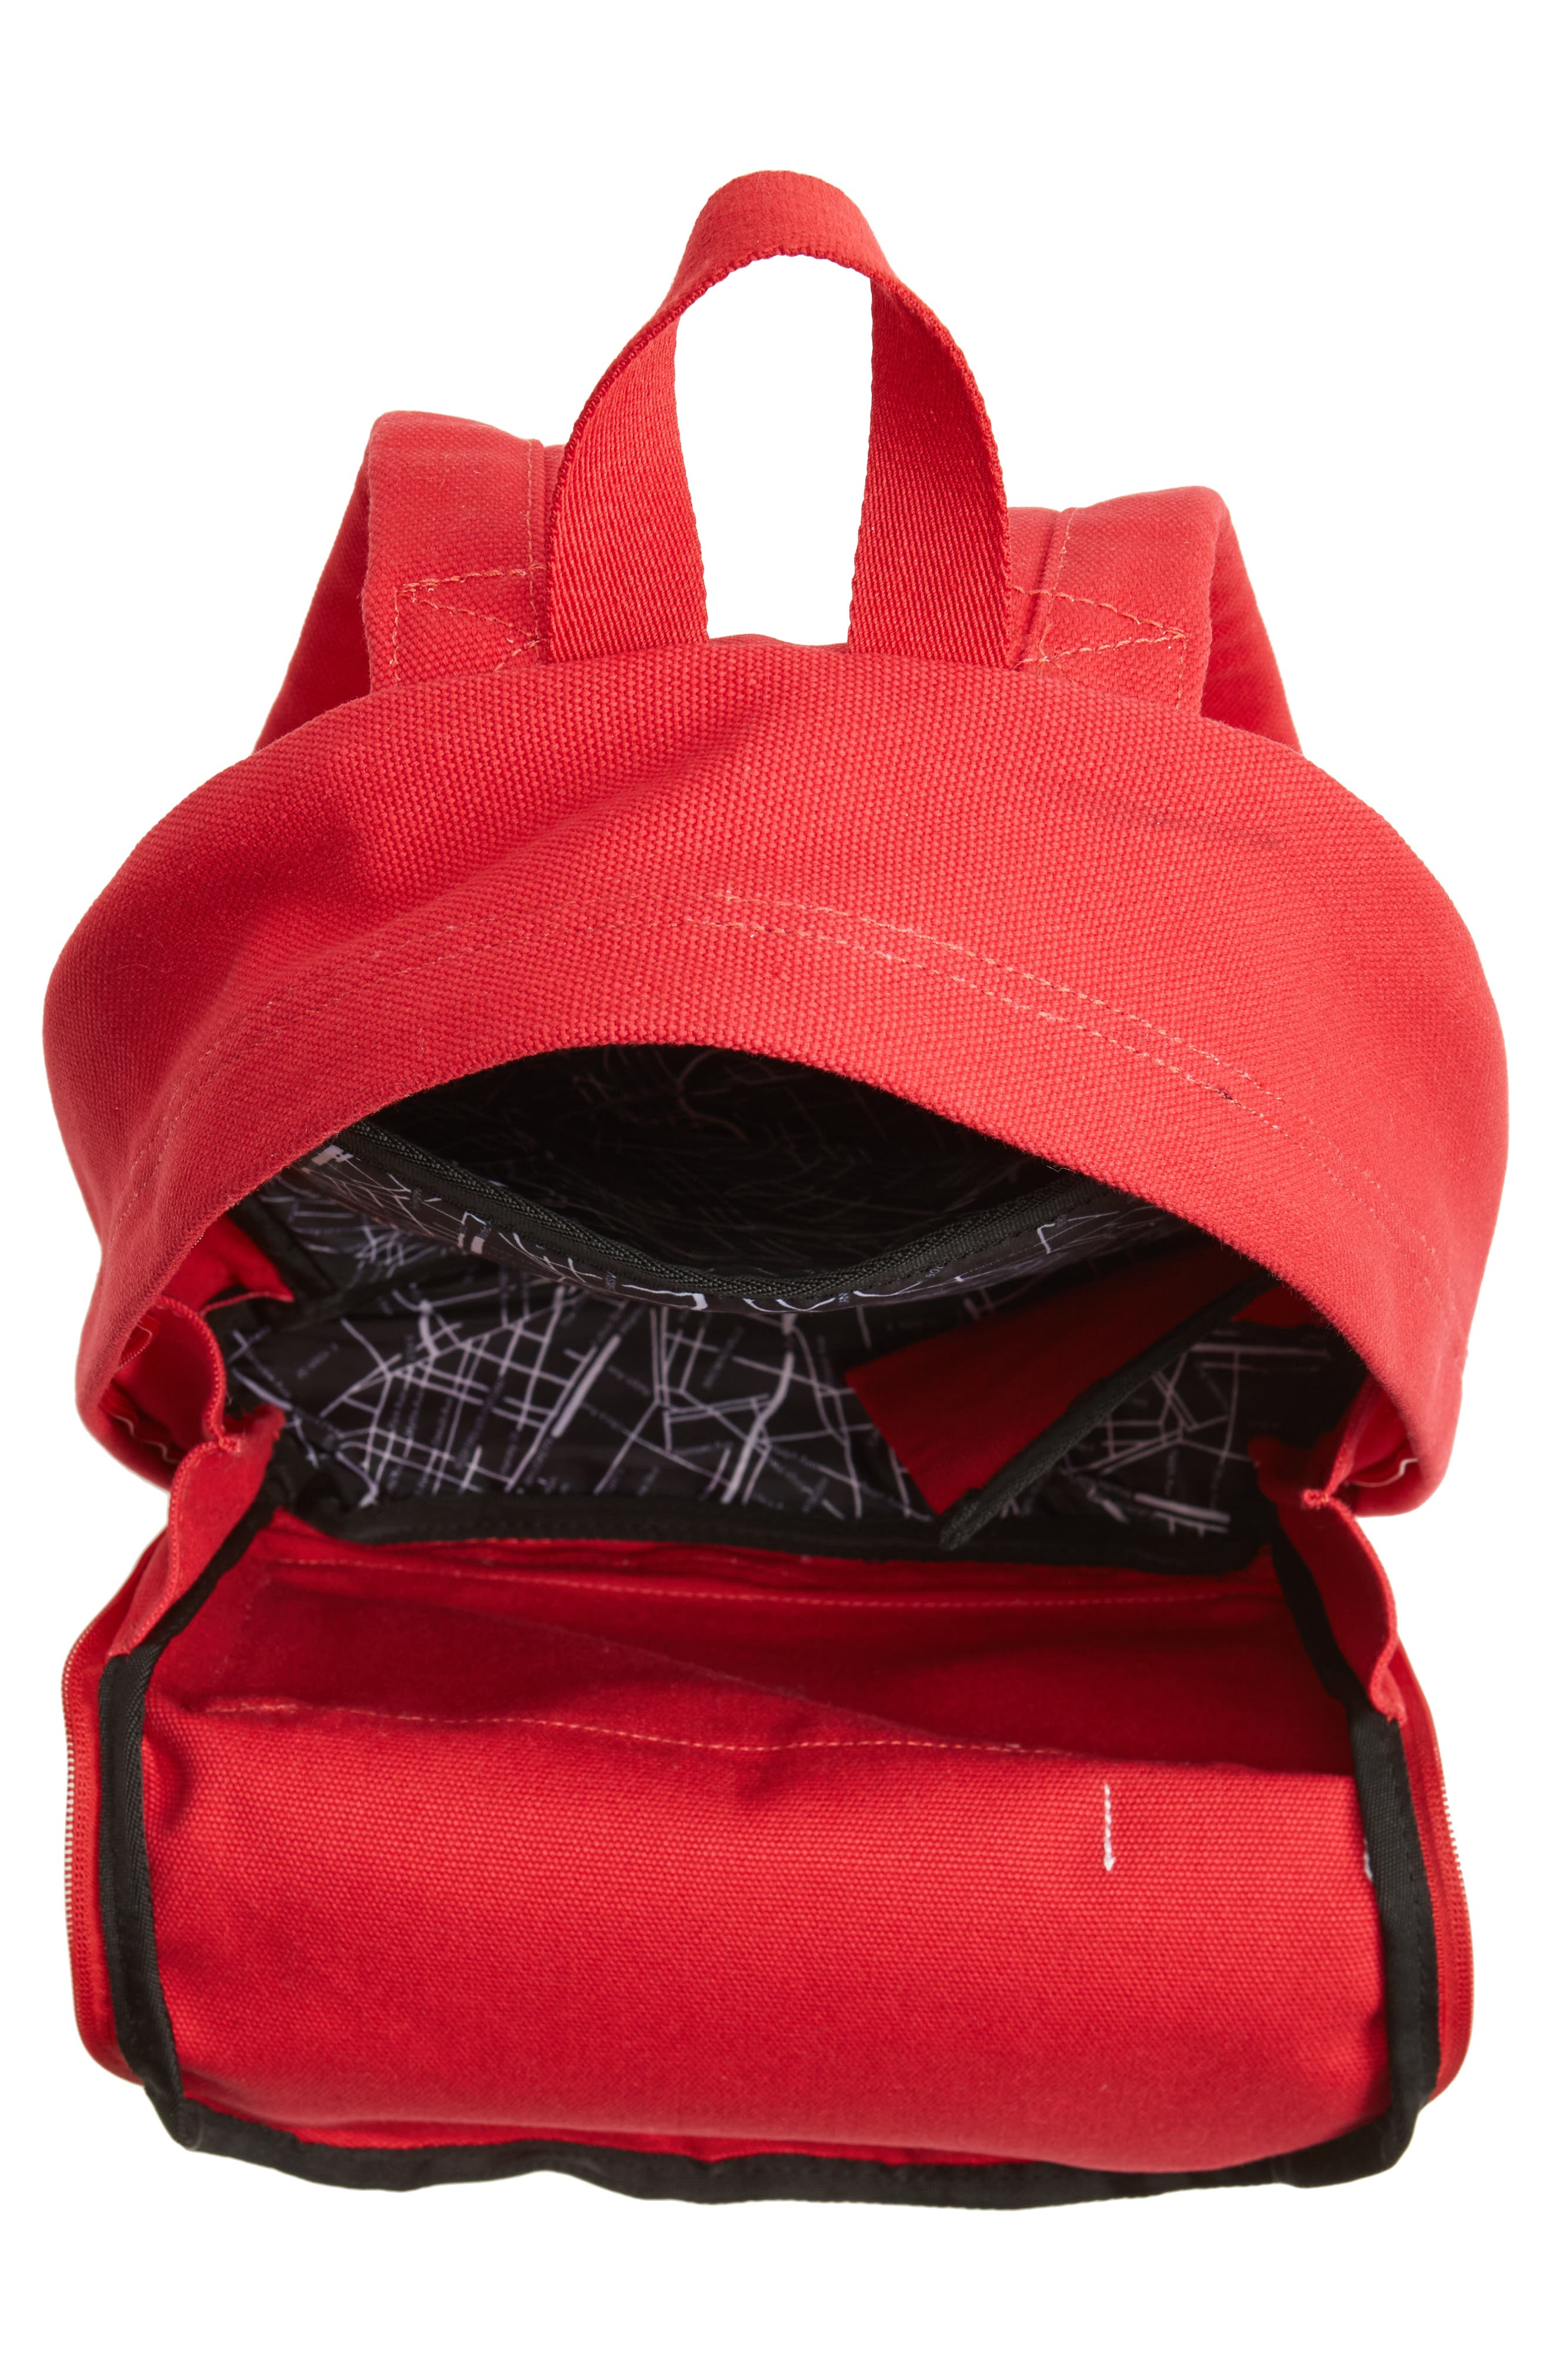 Slim Lorimer Water Resistant Canvas Backpack,                             Alternate thumbnail 4, color,                             Red